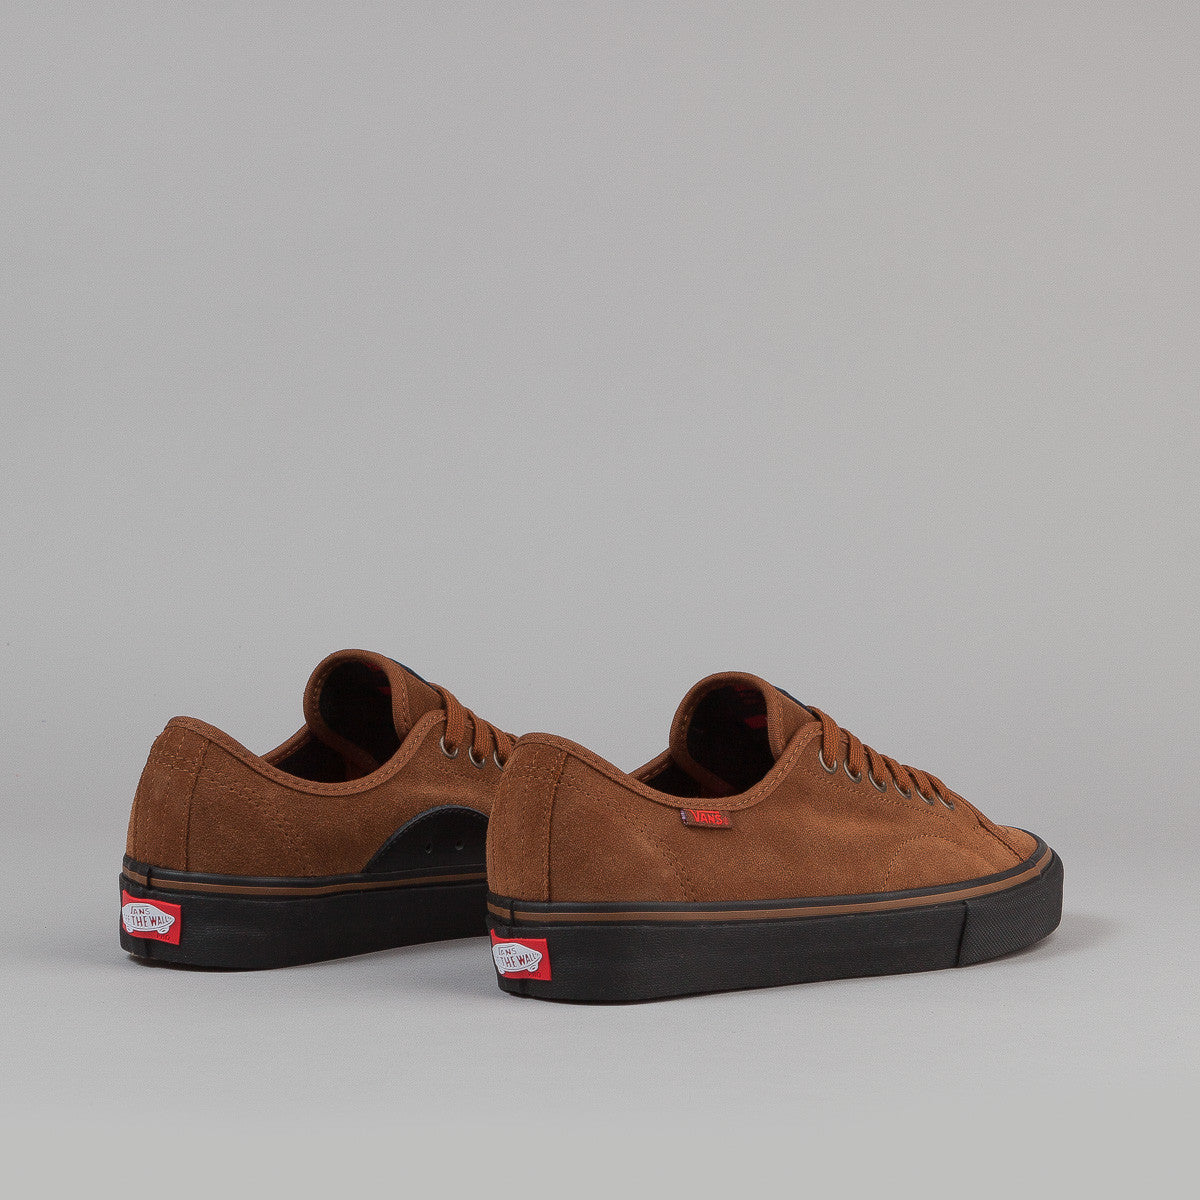 Vans AV Classic Shoes - Tobacco